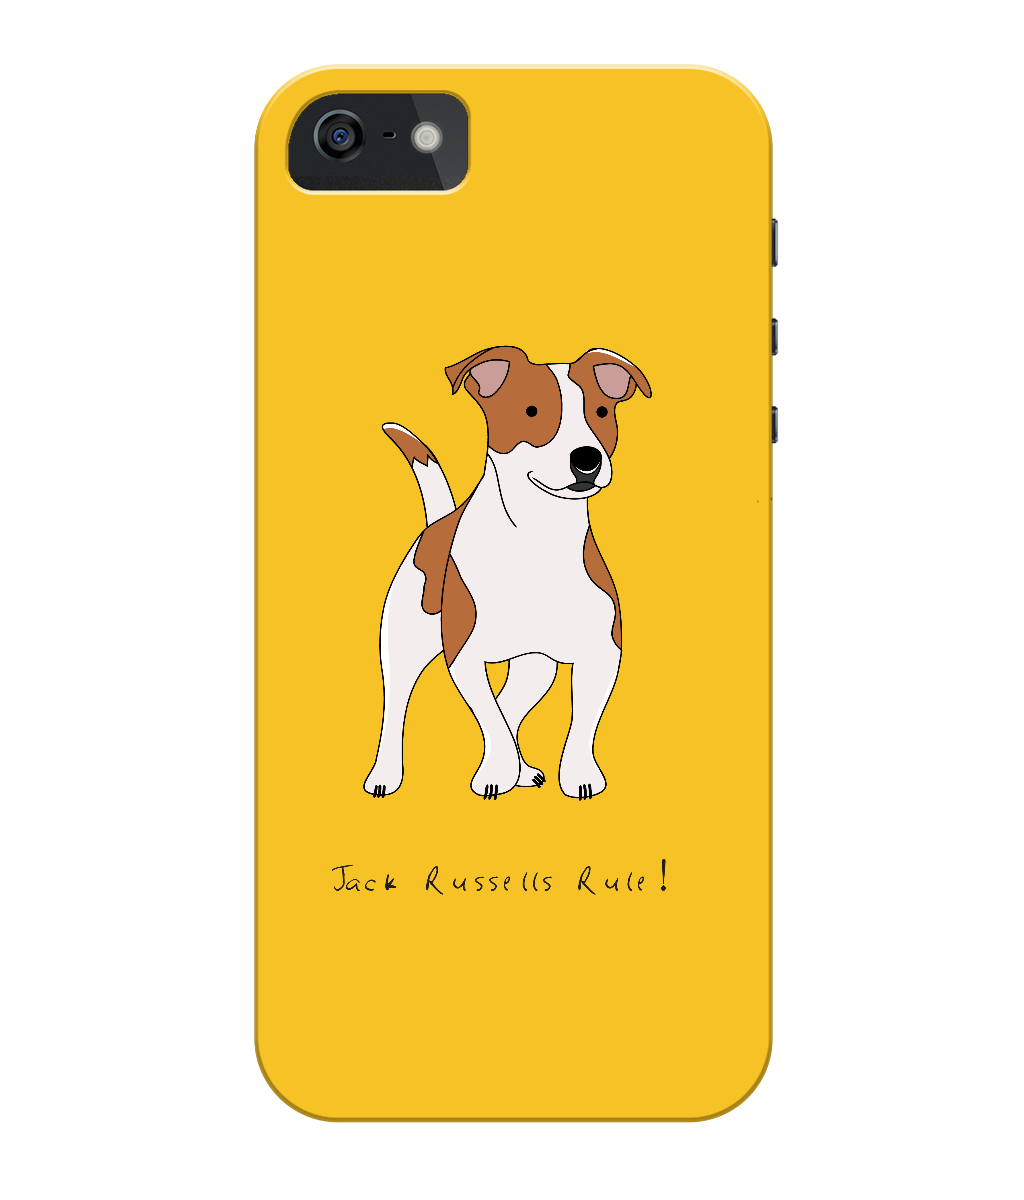 iPhone 5c Full Wrap Phone Case - Jack Russells Rule!